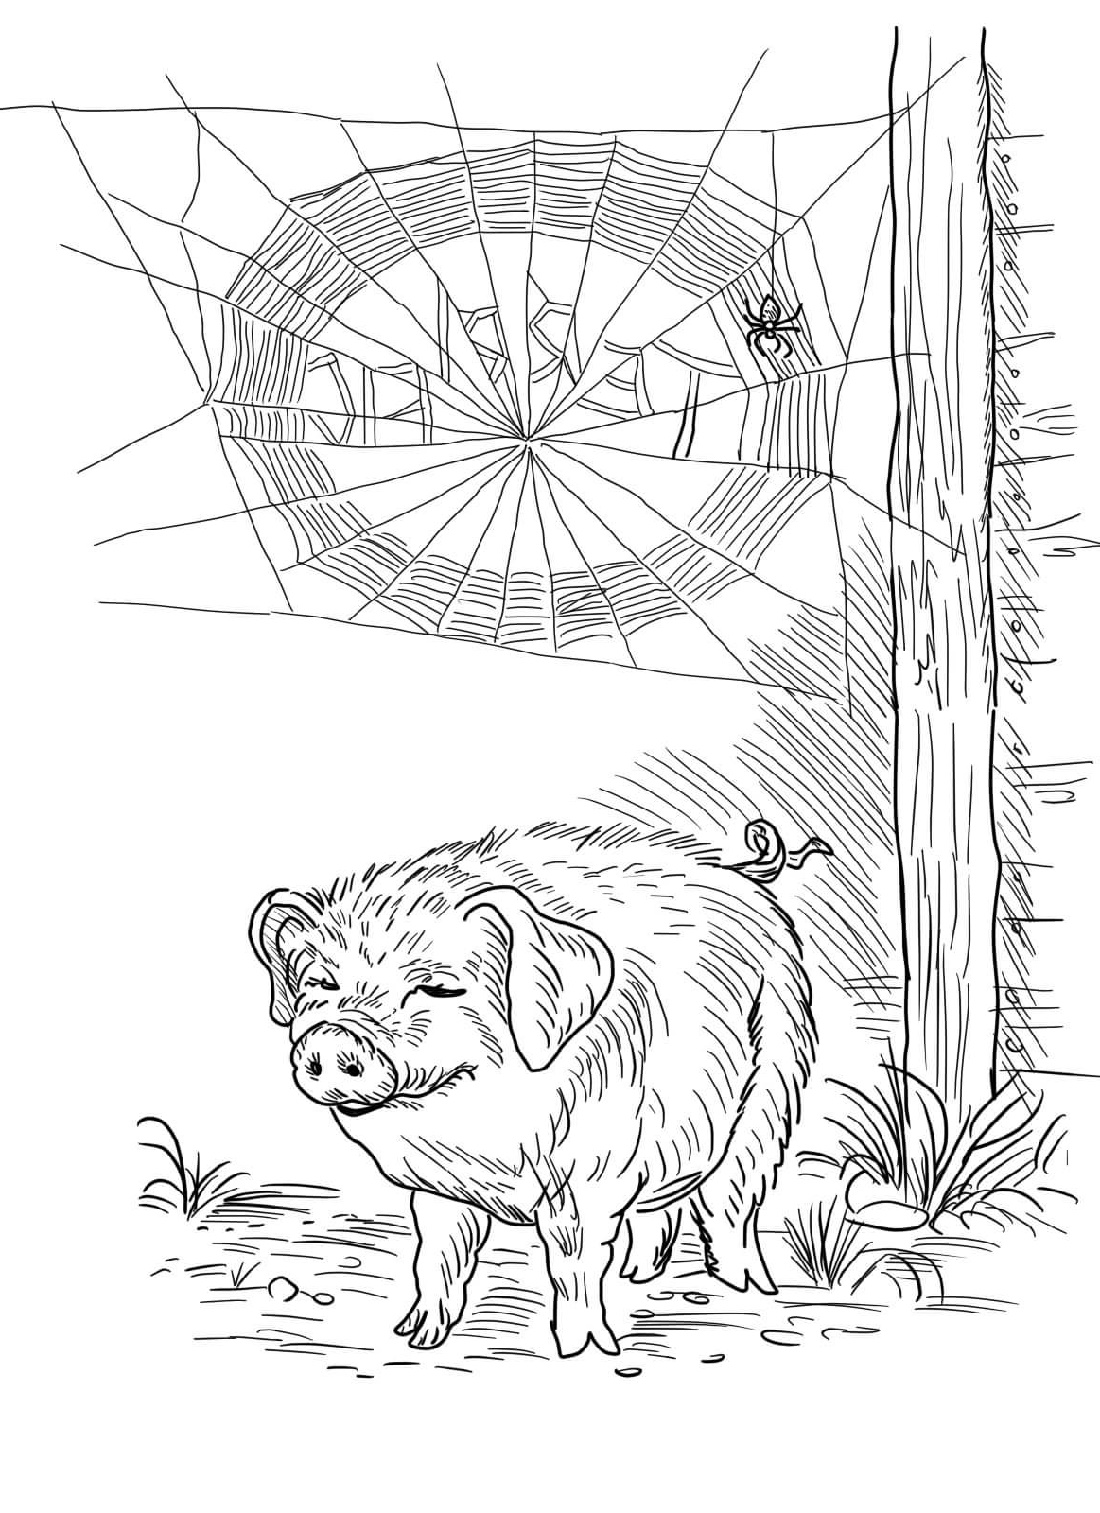 coloring pages websites charlotte39s web coloring pages k5 worksheets pages coloring websites